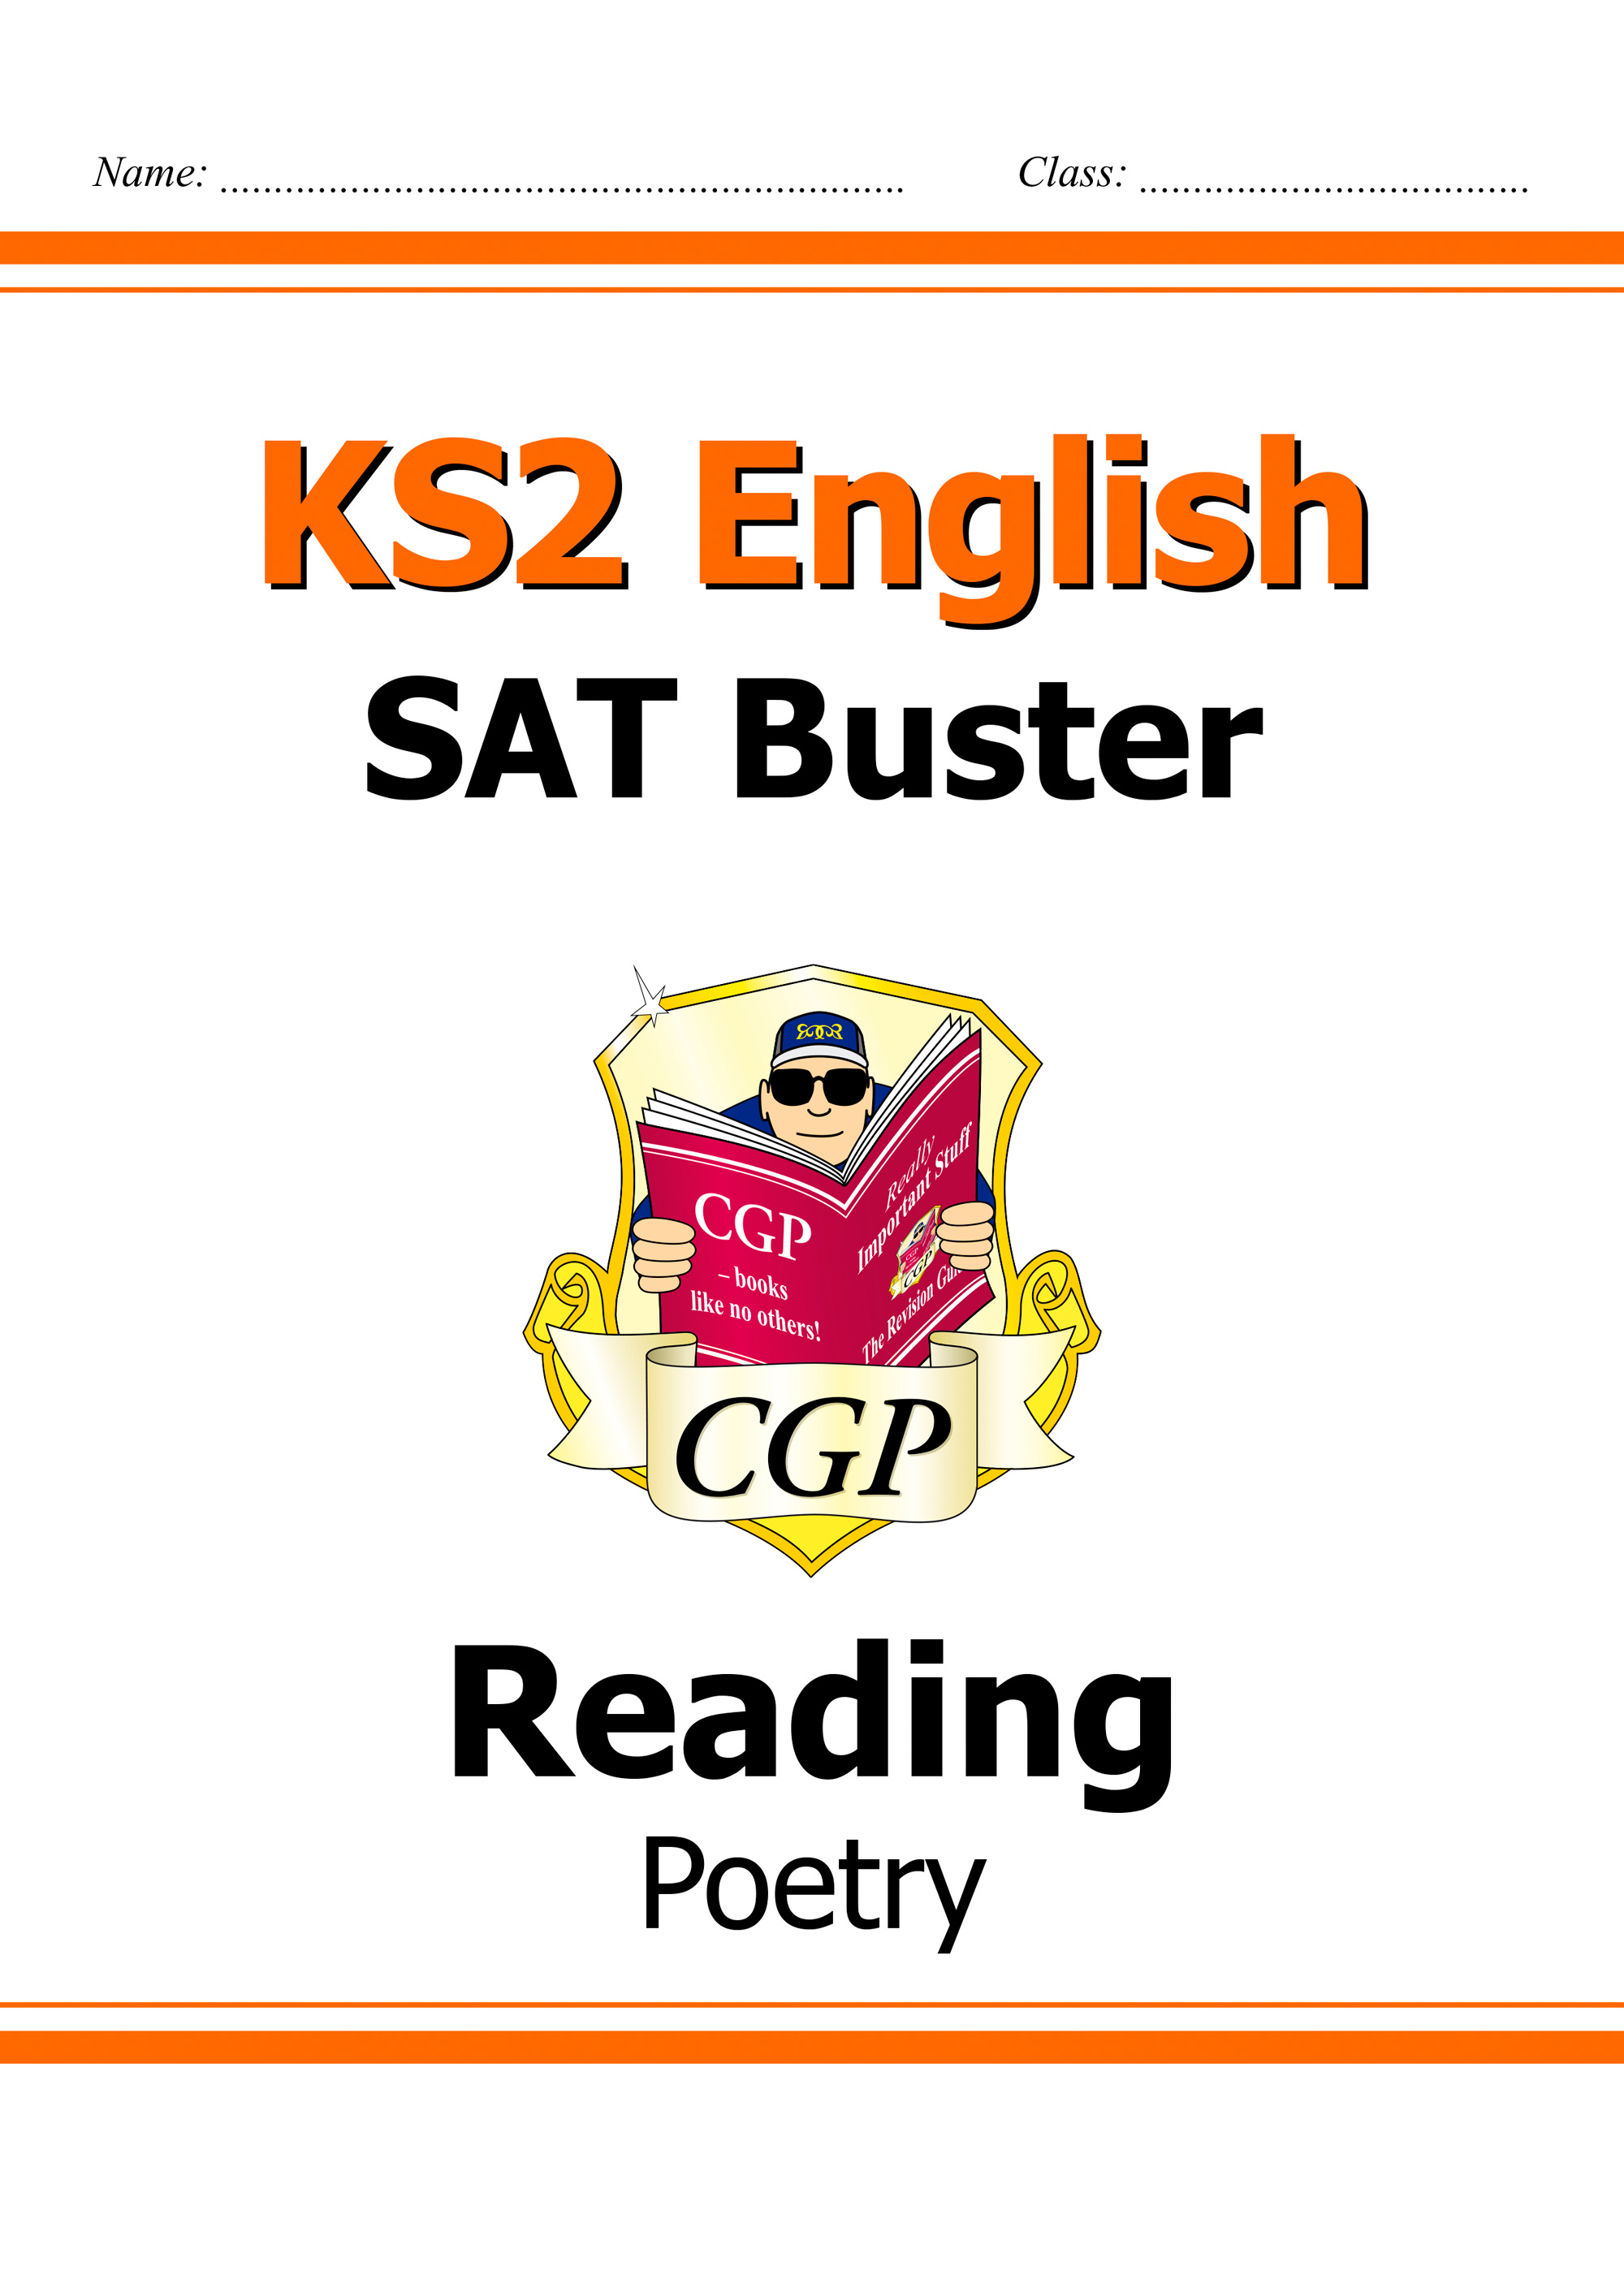 E6FRP21DK - New KS2 English Reading SAT Buster: Poetry (for tests in 2018 and beyond)